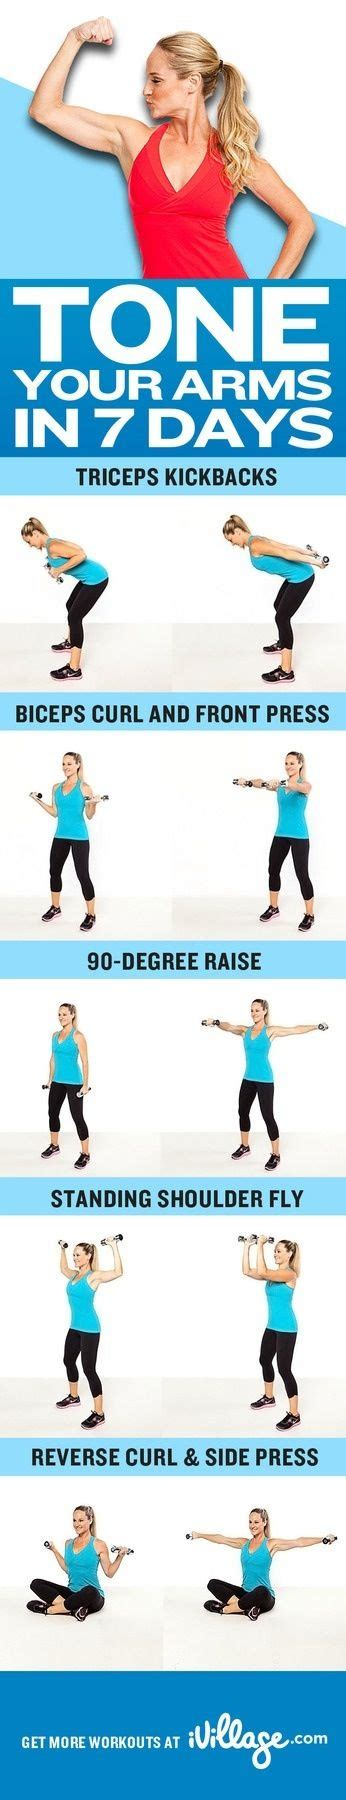 how to get toned arms pin by lyndsay lemon on workouts at home pinterest